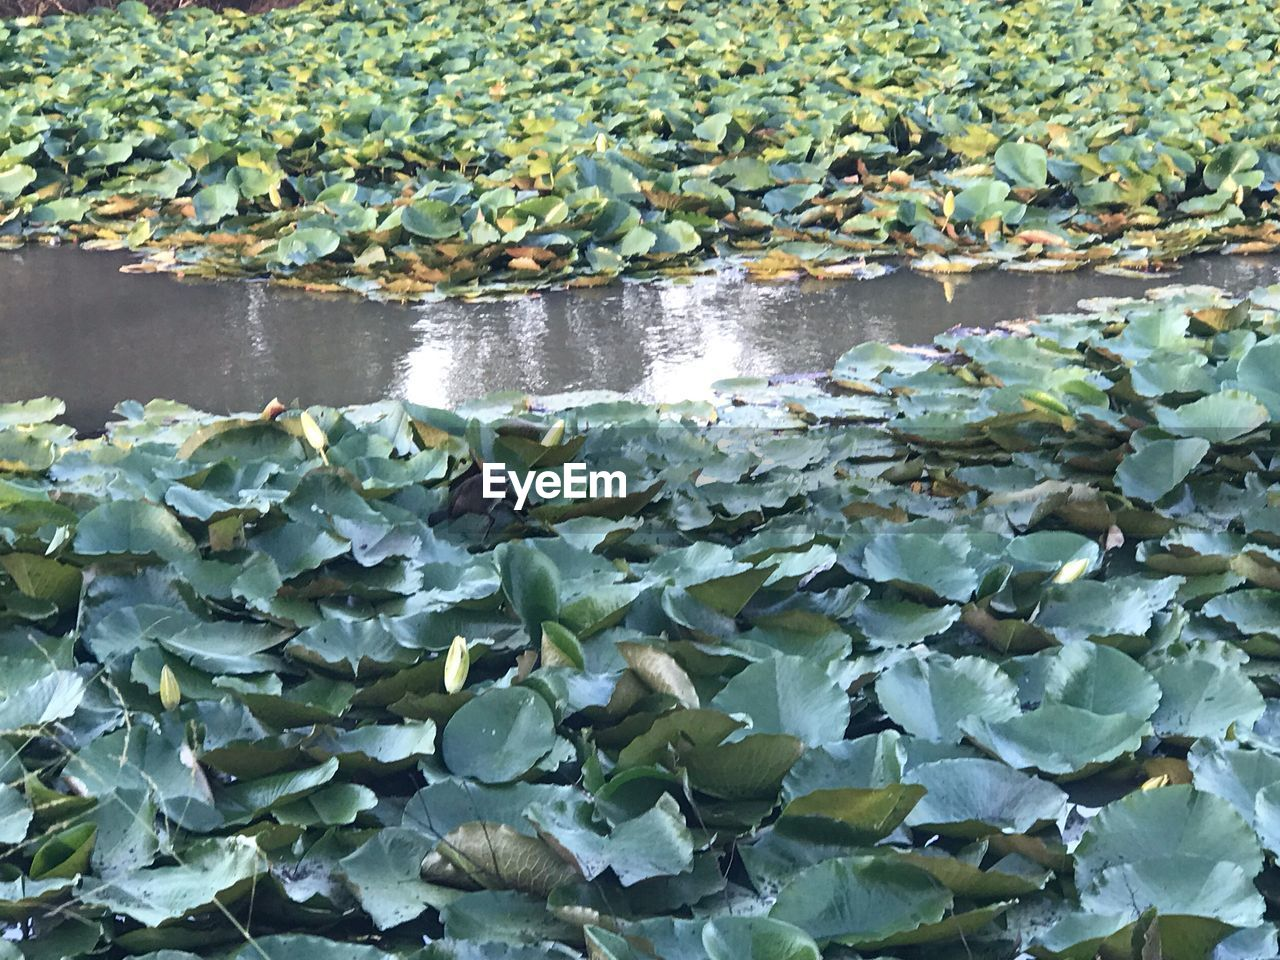 leaf, water, plant part, plant, nature, day, beauty in nature, growth, floating, green color, no people, lake, water lily, floating on water, outdoors, flower, close-up, leaves, high angle view